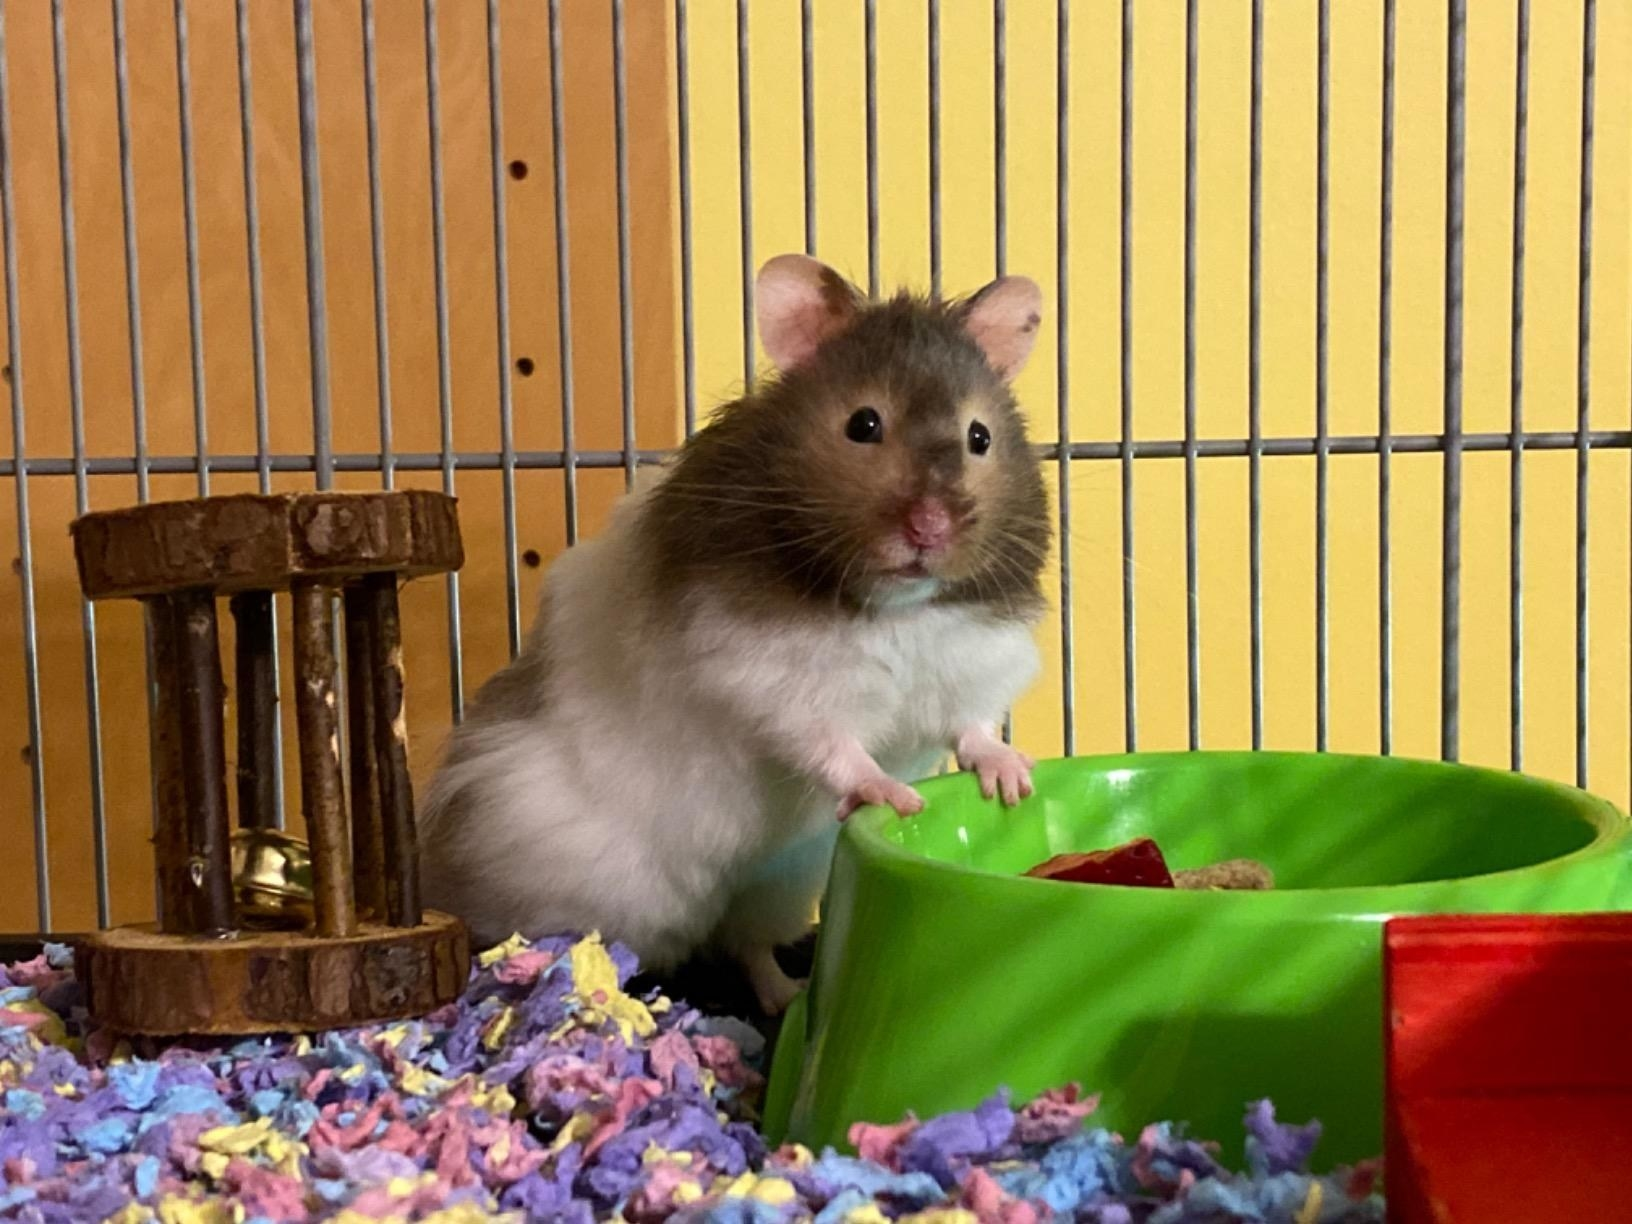 A hamster with his toys on the colorful bedding